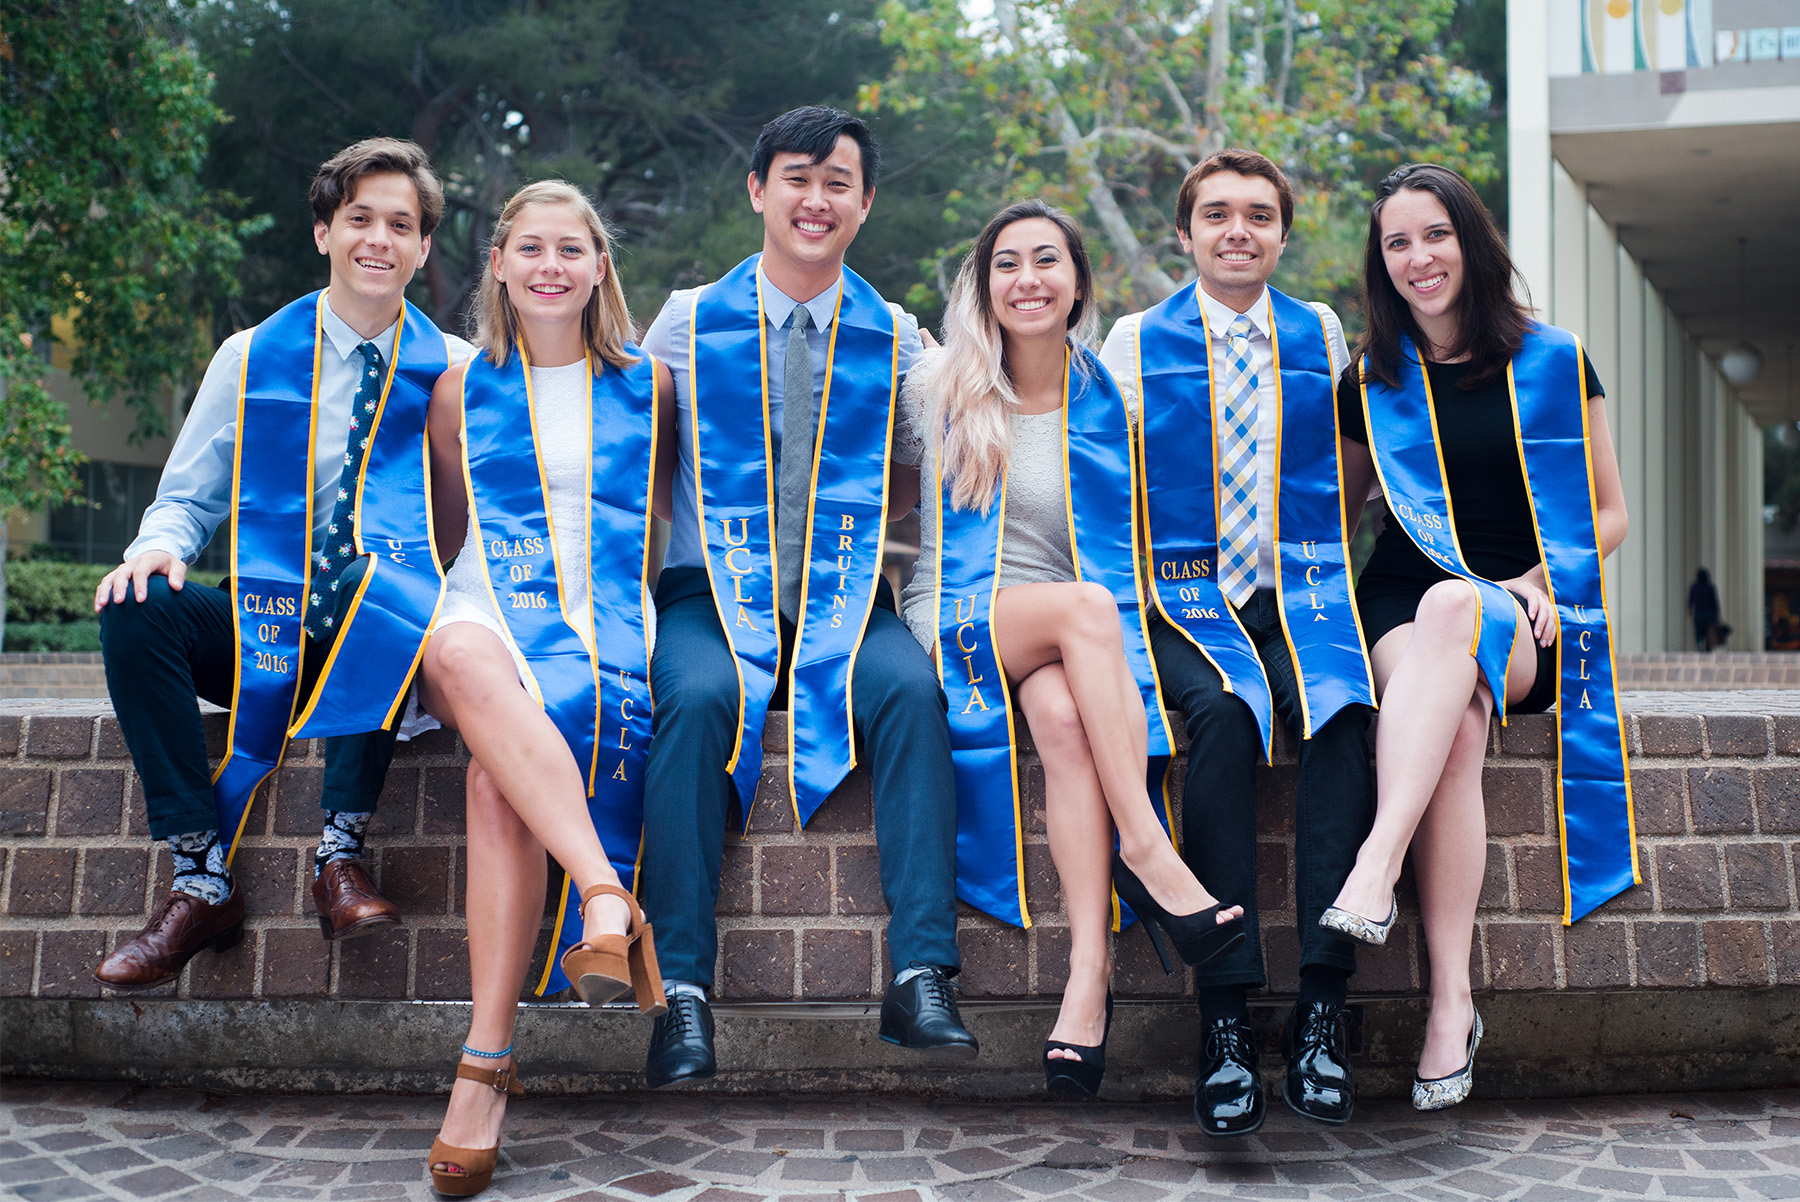 Share the moment - We know from experience that friends play a huge role during school.Share the excitement of graduating with them.